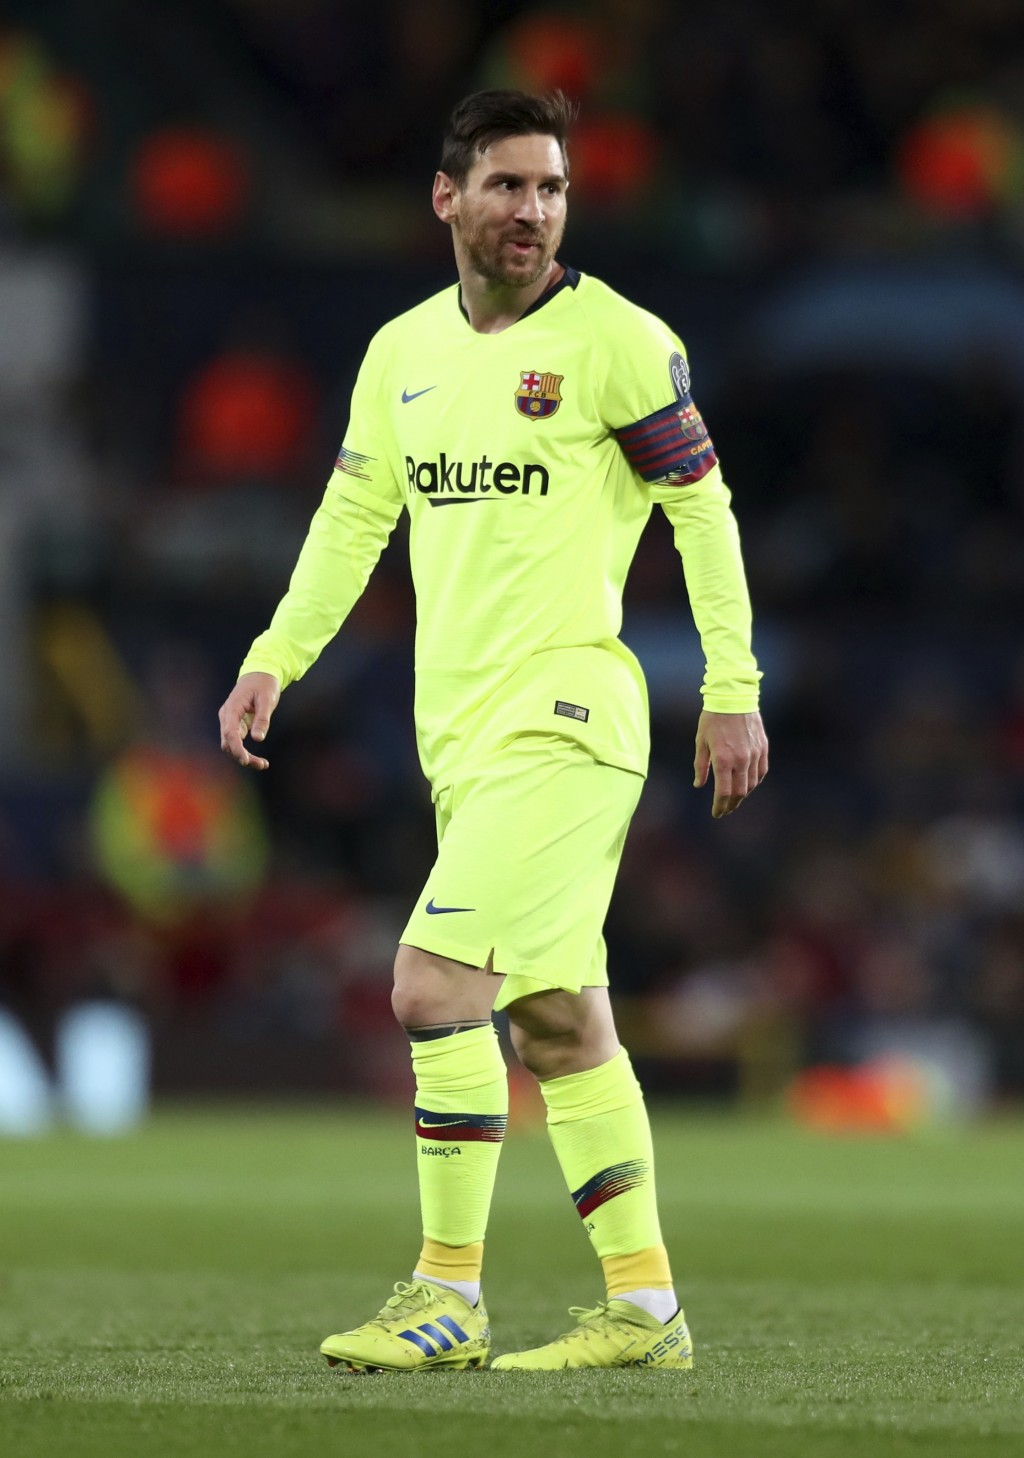 Barcelona's Lionel Messi reacts during the Champions League quarterfinal, first leg, soccer match between Manchester United and FC Barcelona at Old Tr...